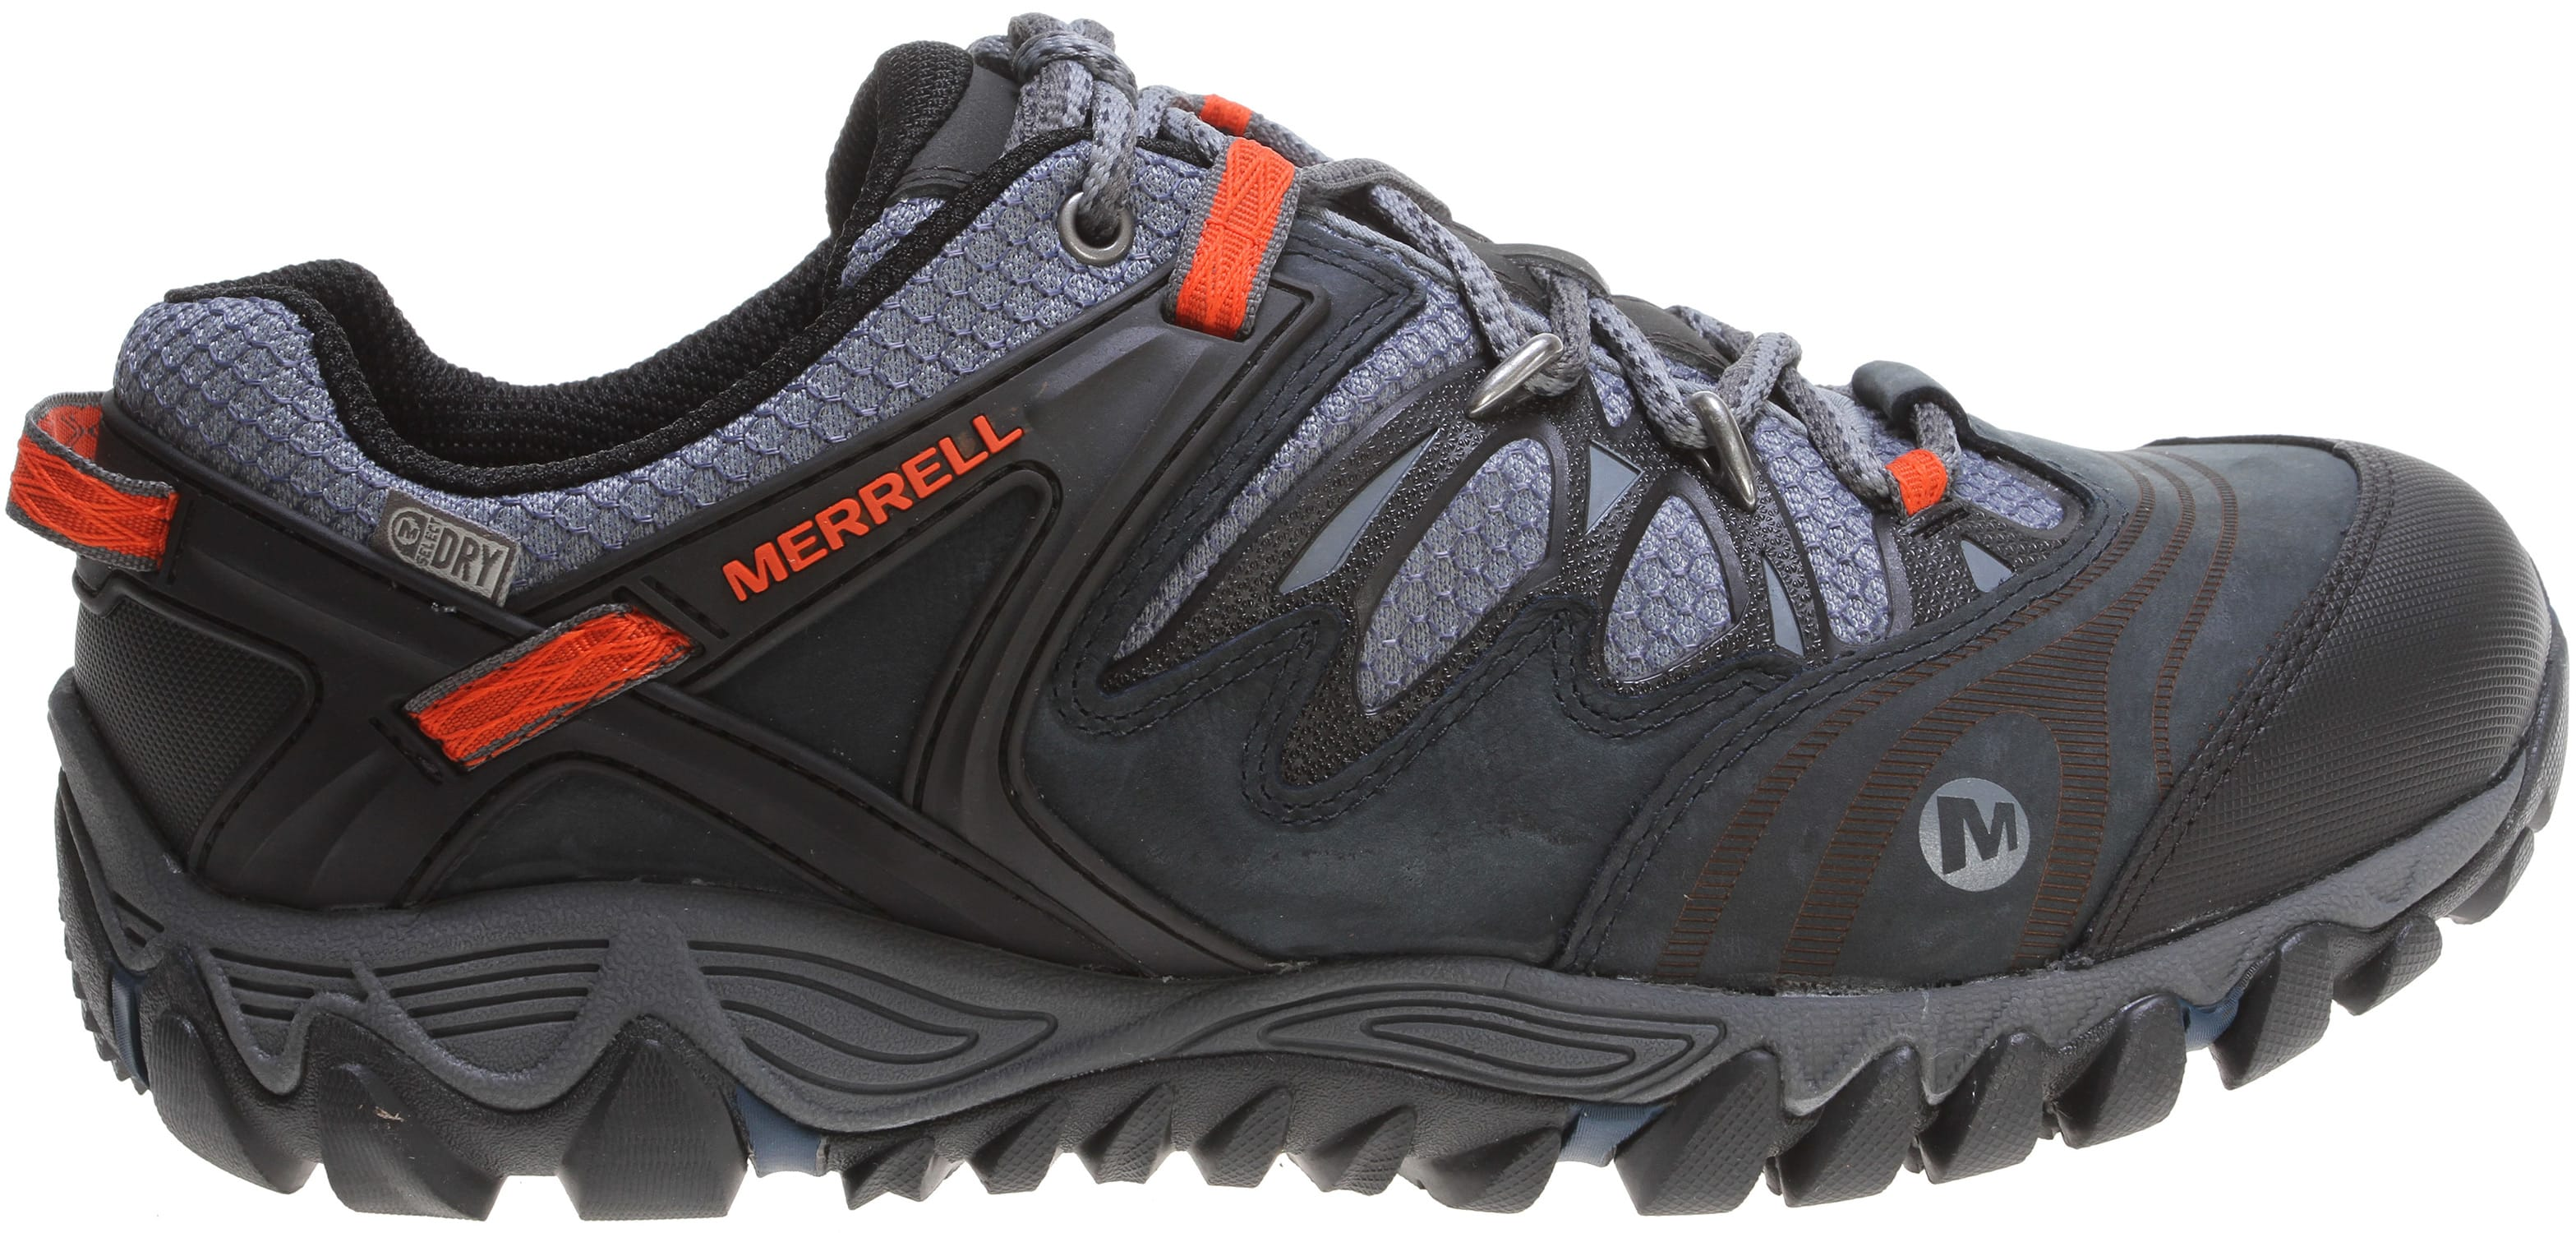 Kids Discount Hiking Shoes